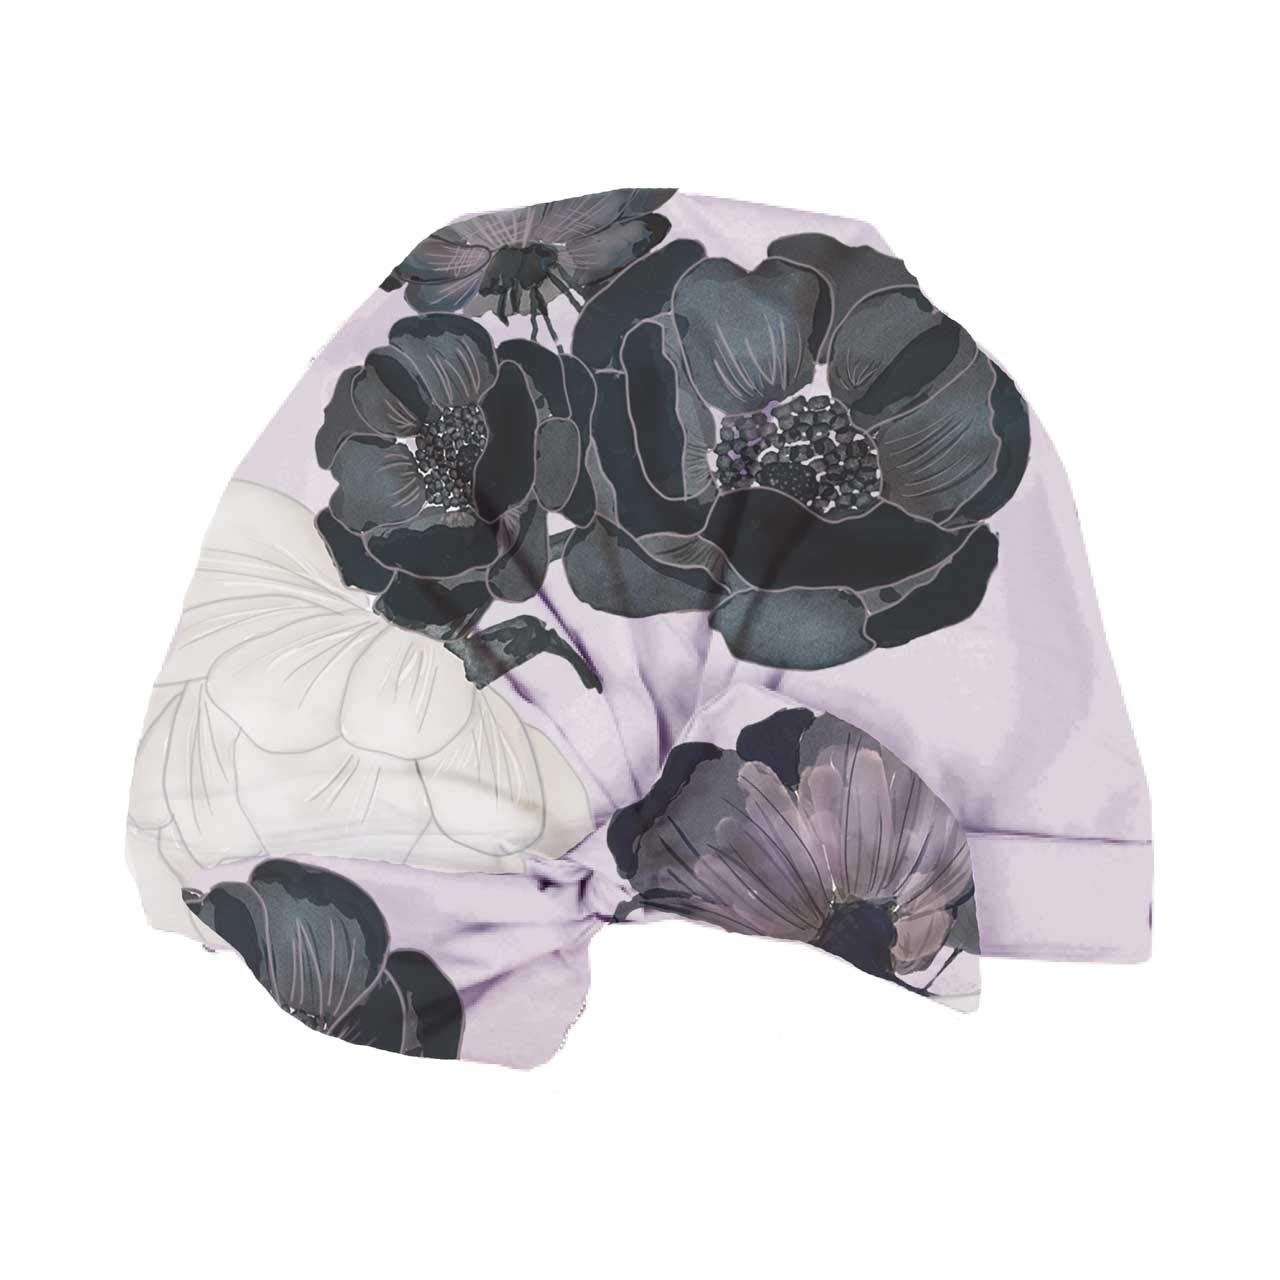 Kitsch Luxe Shower Cap, Reusable and Waterproof, Mold-Resistant Lined Shower Cap (Palm Leaves)